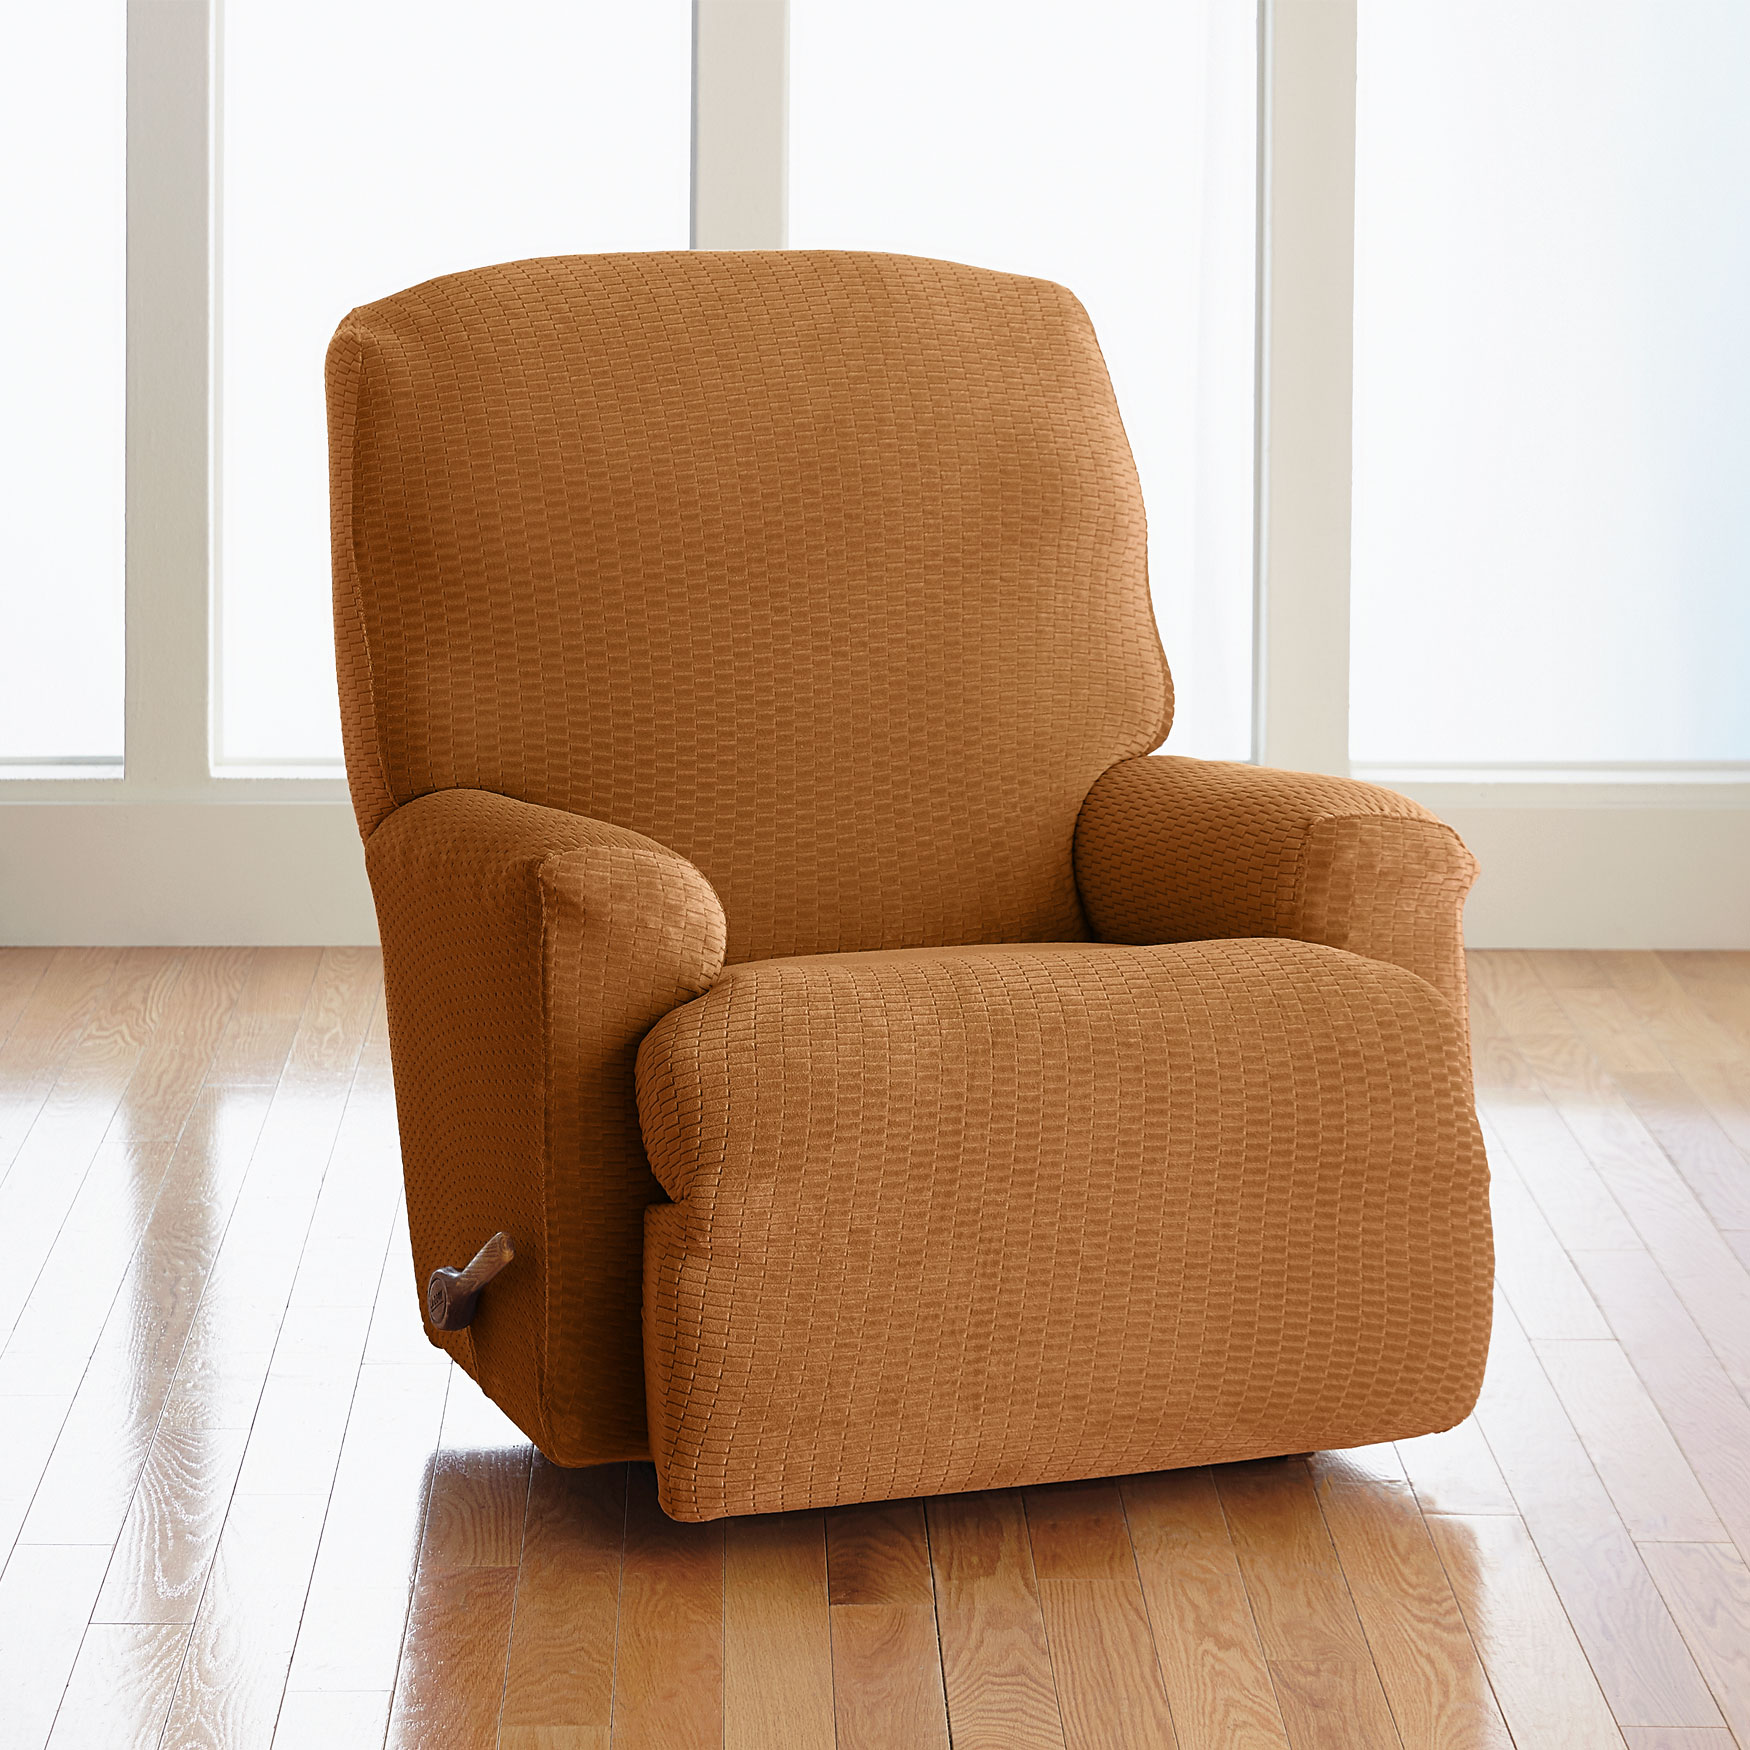 BH Studio Brighton Stretch Recliner Slipcover, MARIGOLD